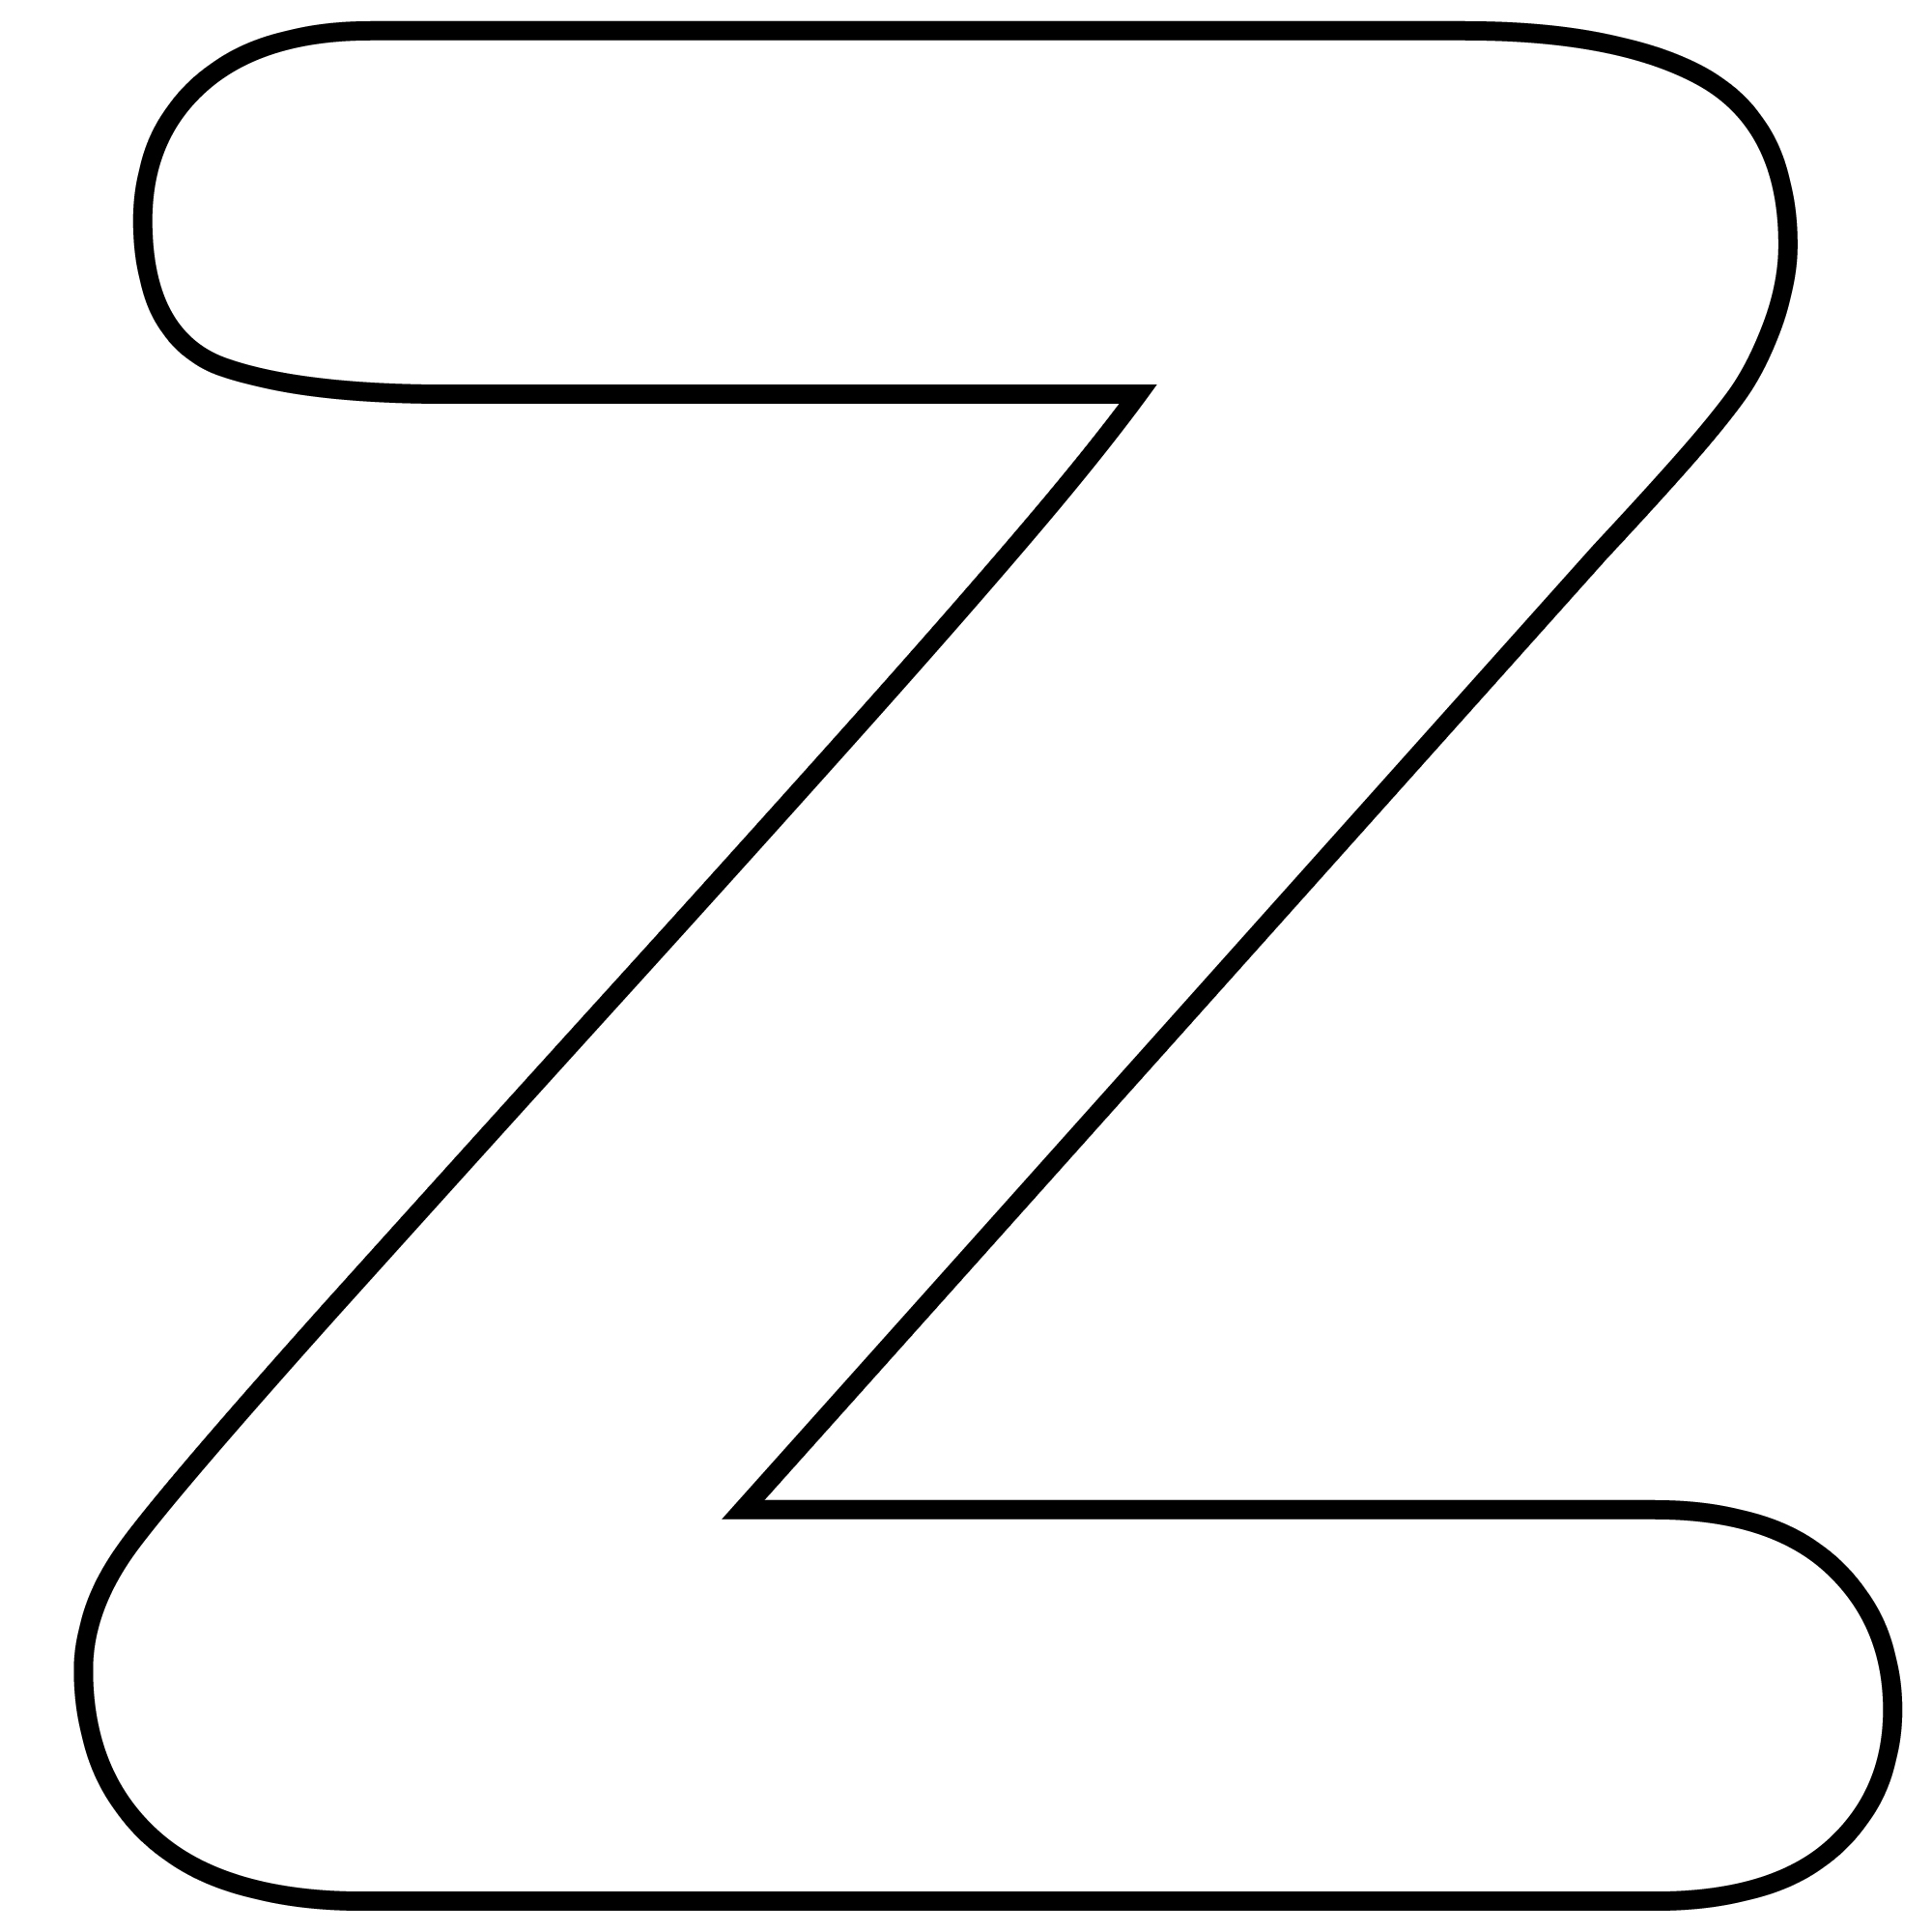 Letter z clipart black and white